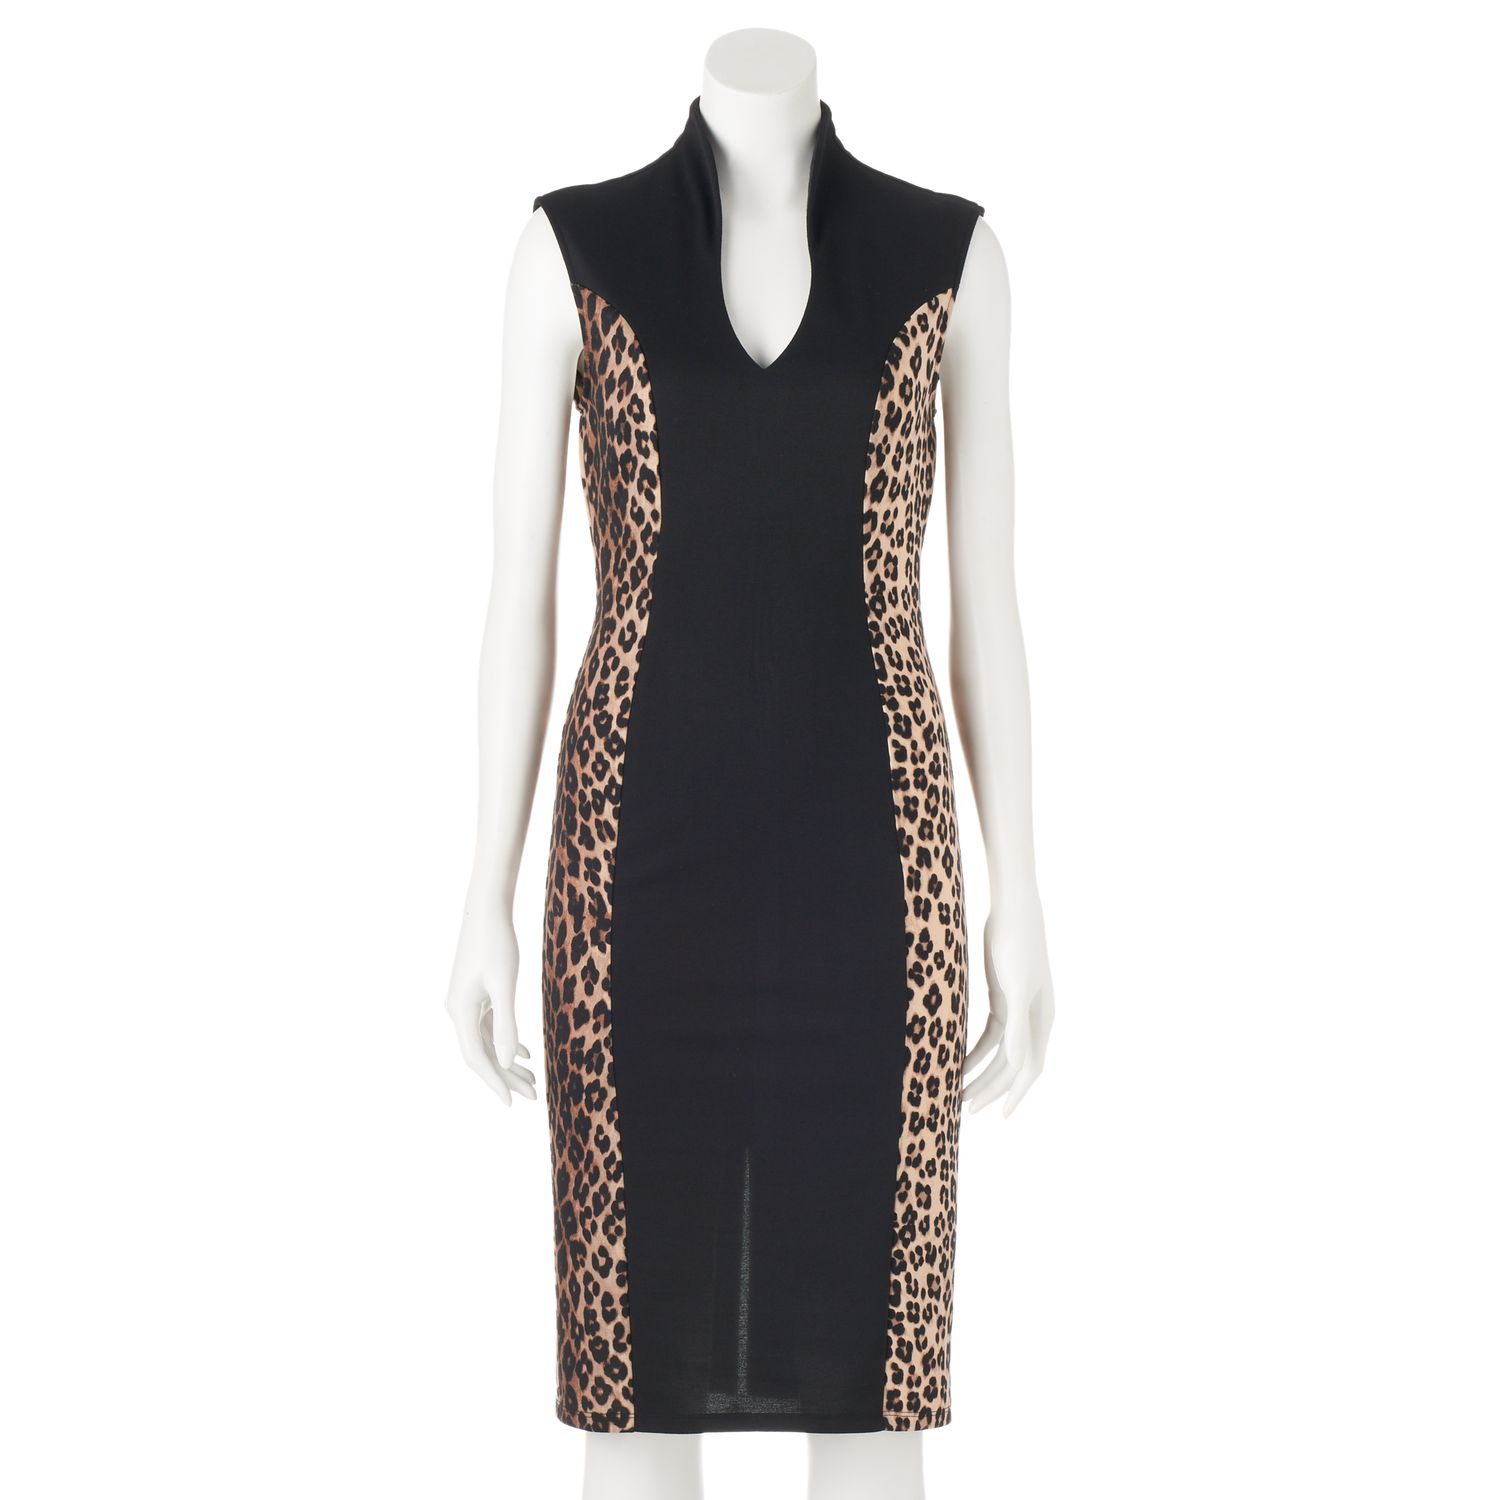 Cheetah b blue dress stain